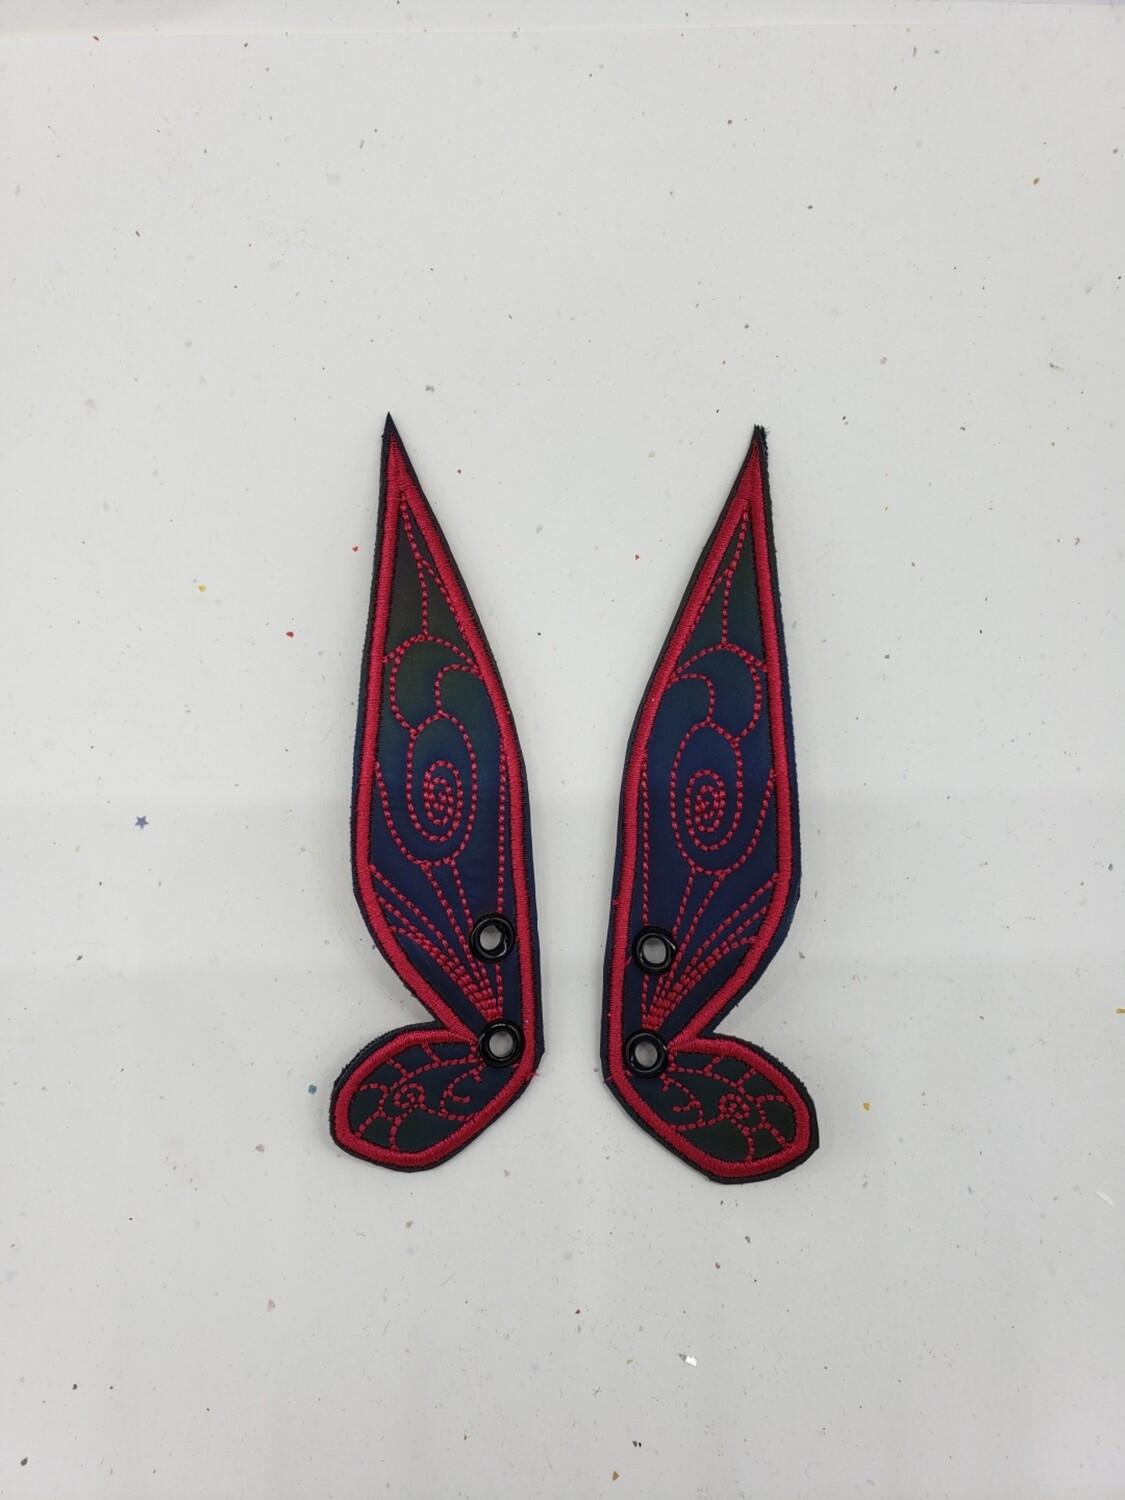 Fairy wings rainbow reflective dark pink stitching skate wings